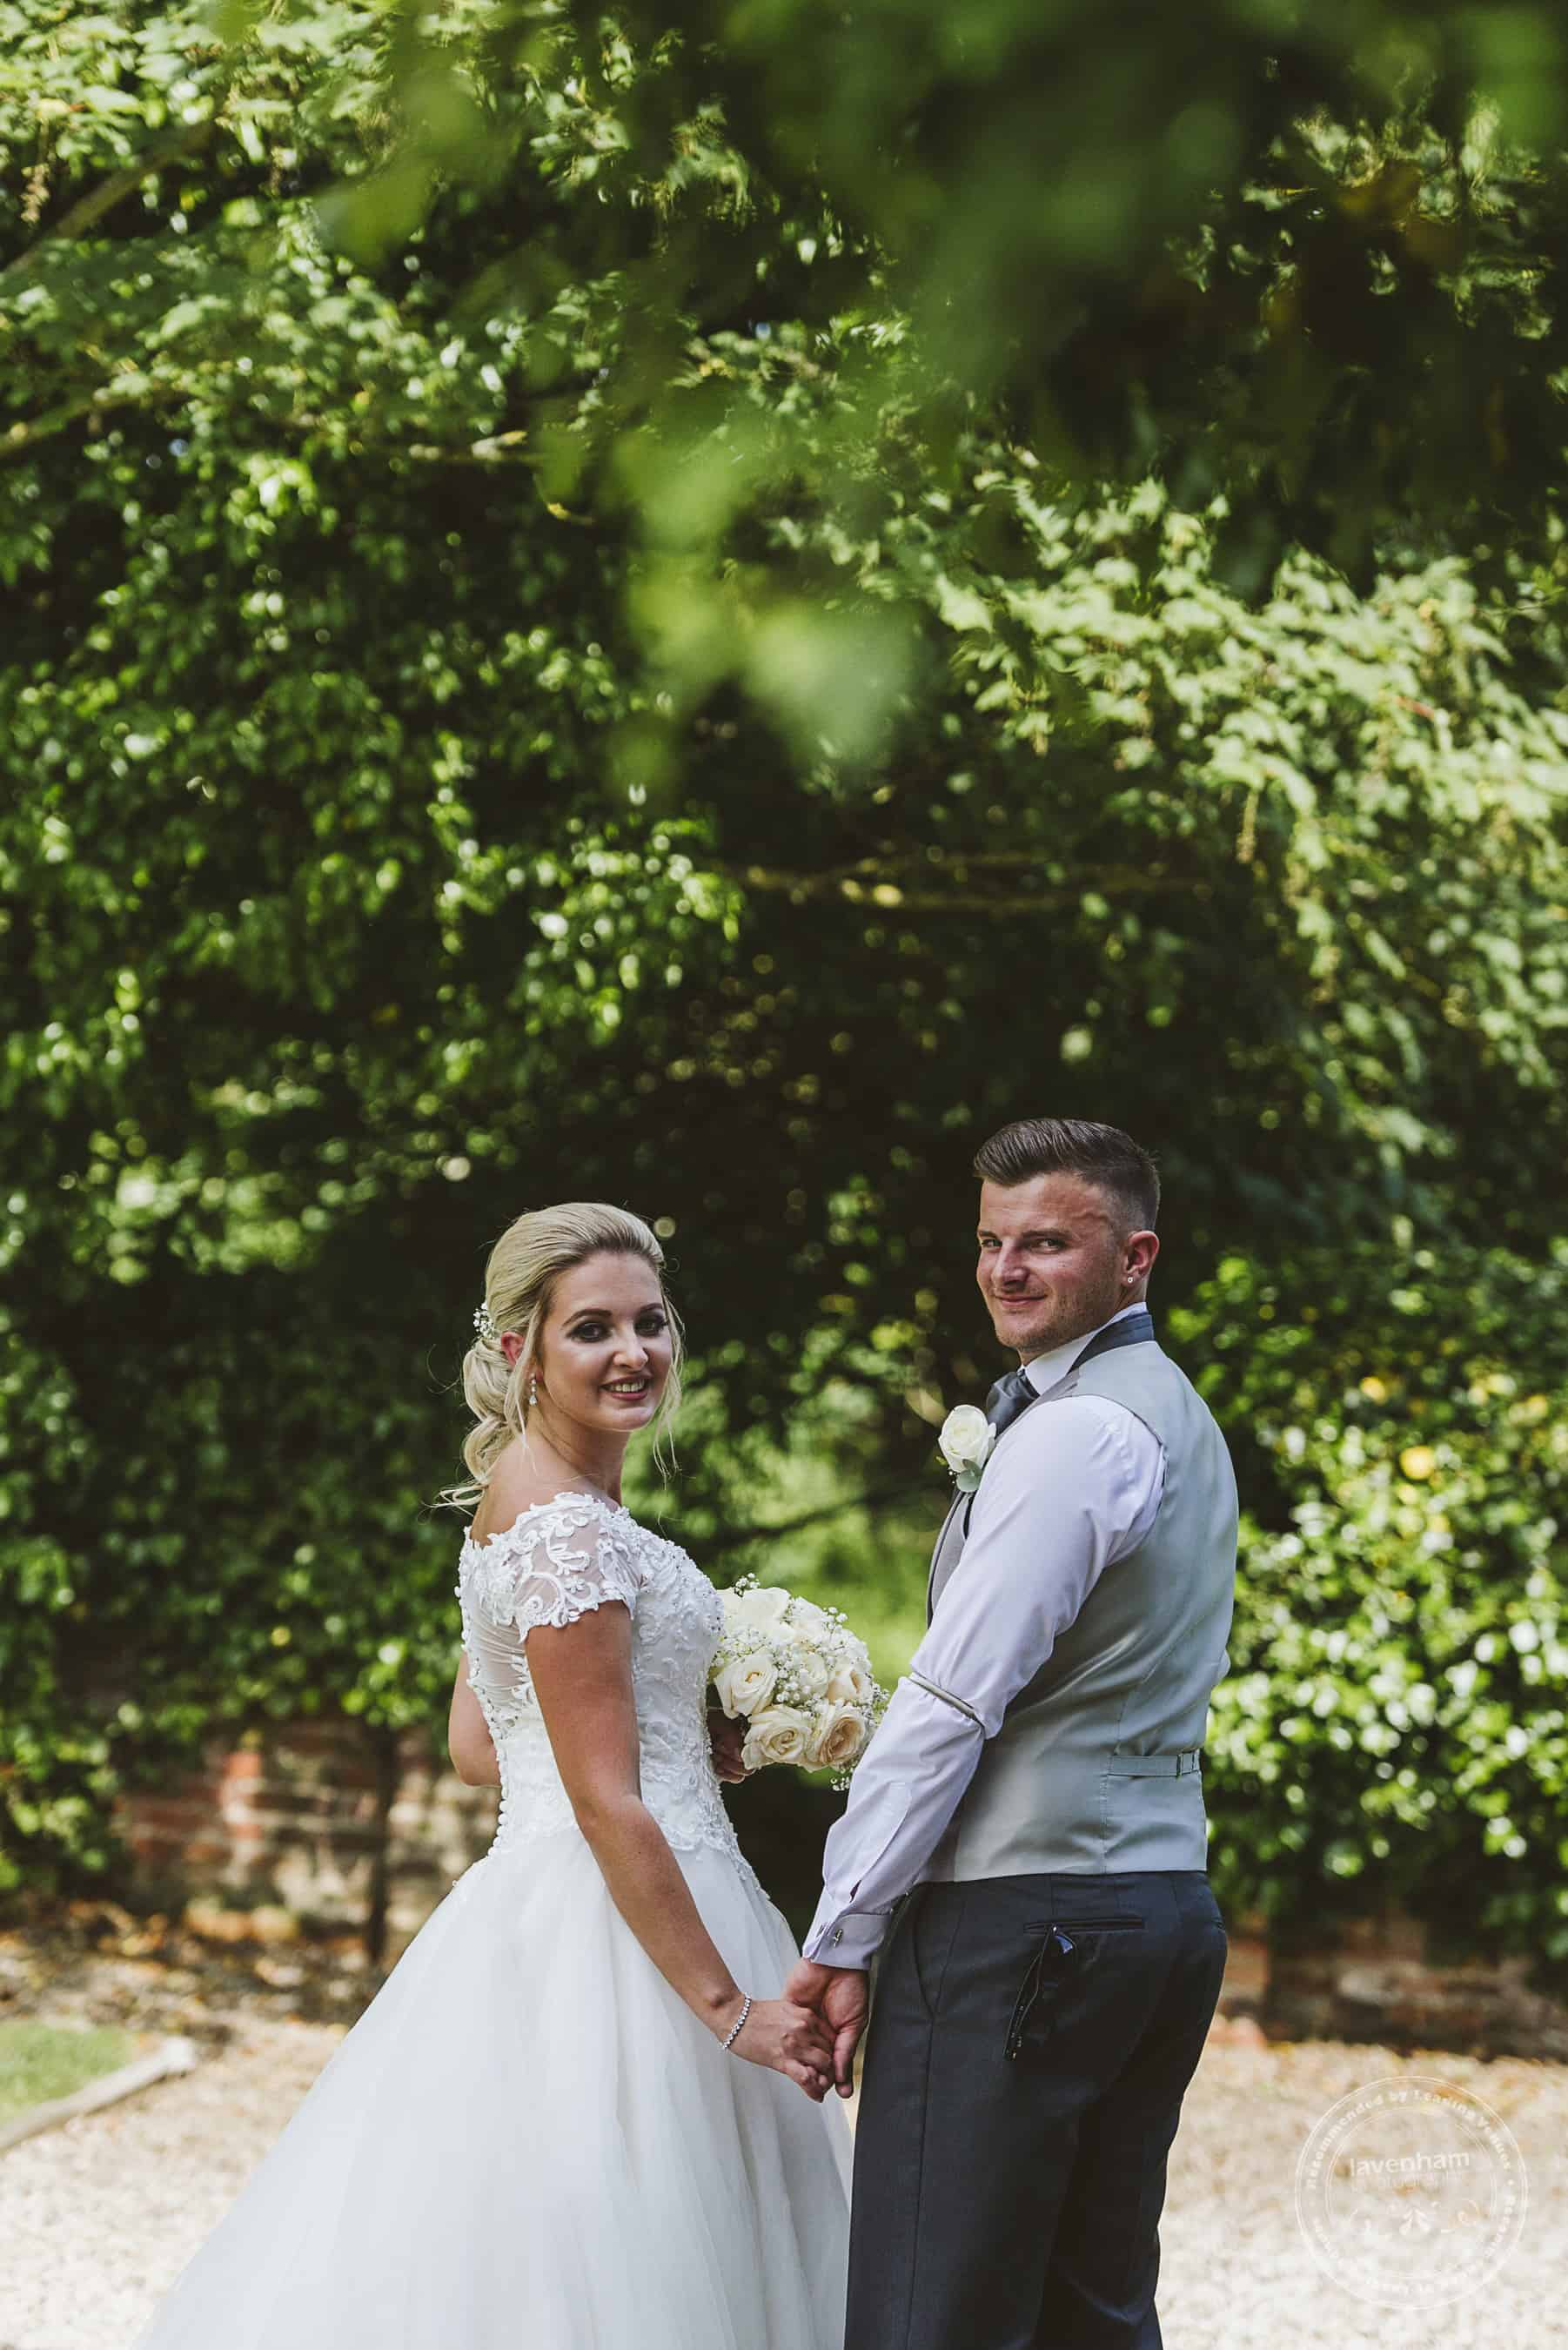 030618 Leez Priory Wedding Photography Lavenham Photographic 062